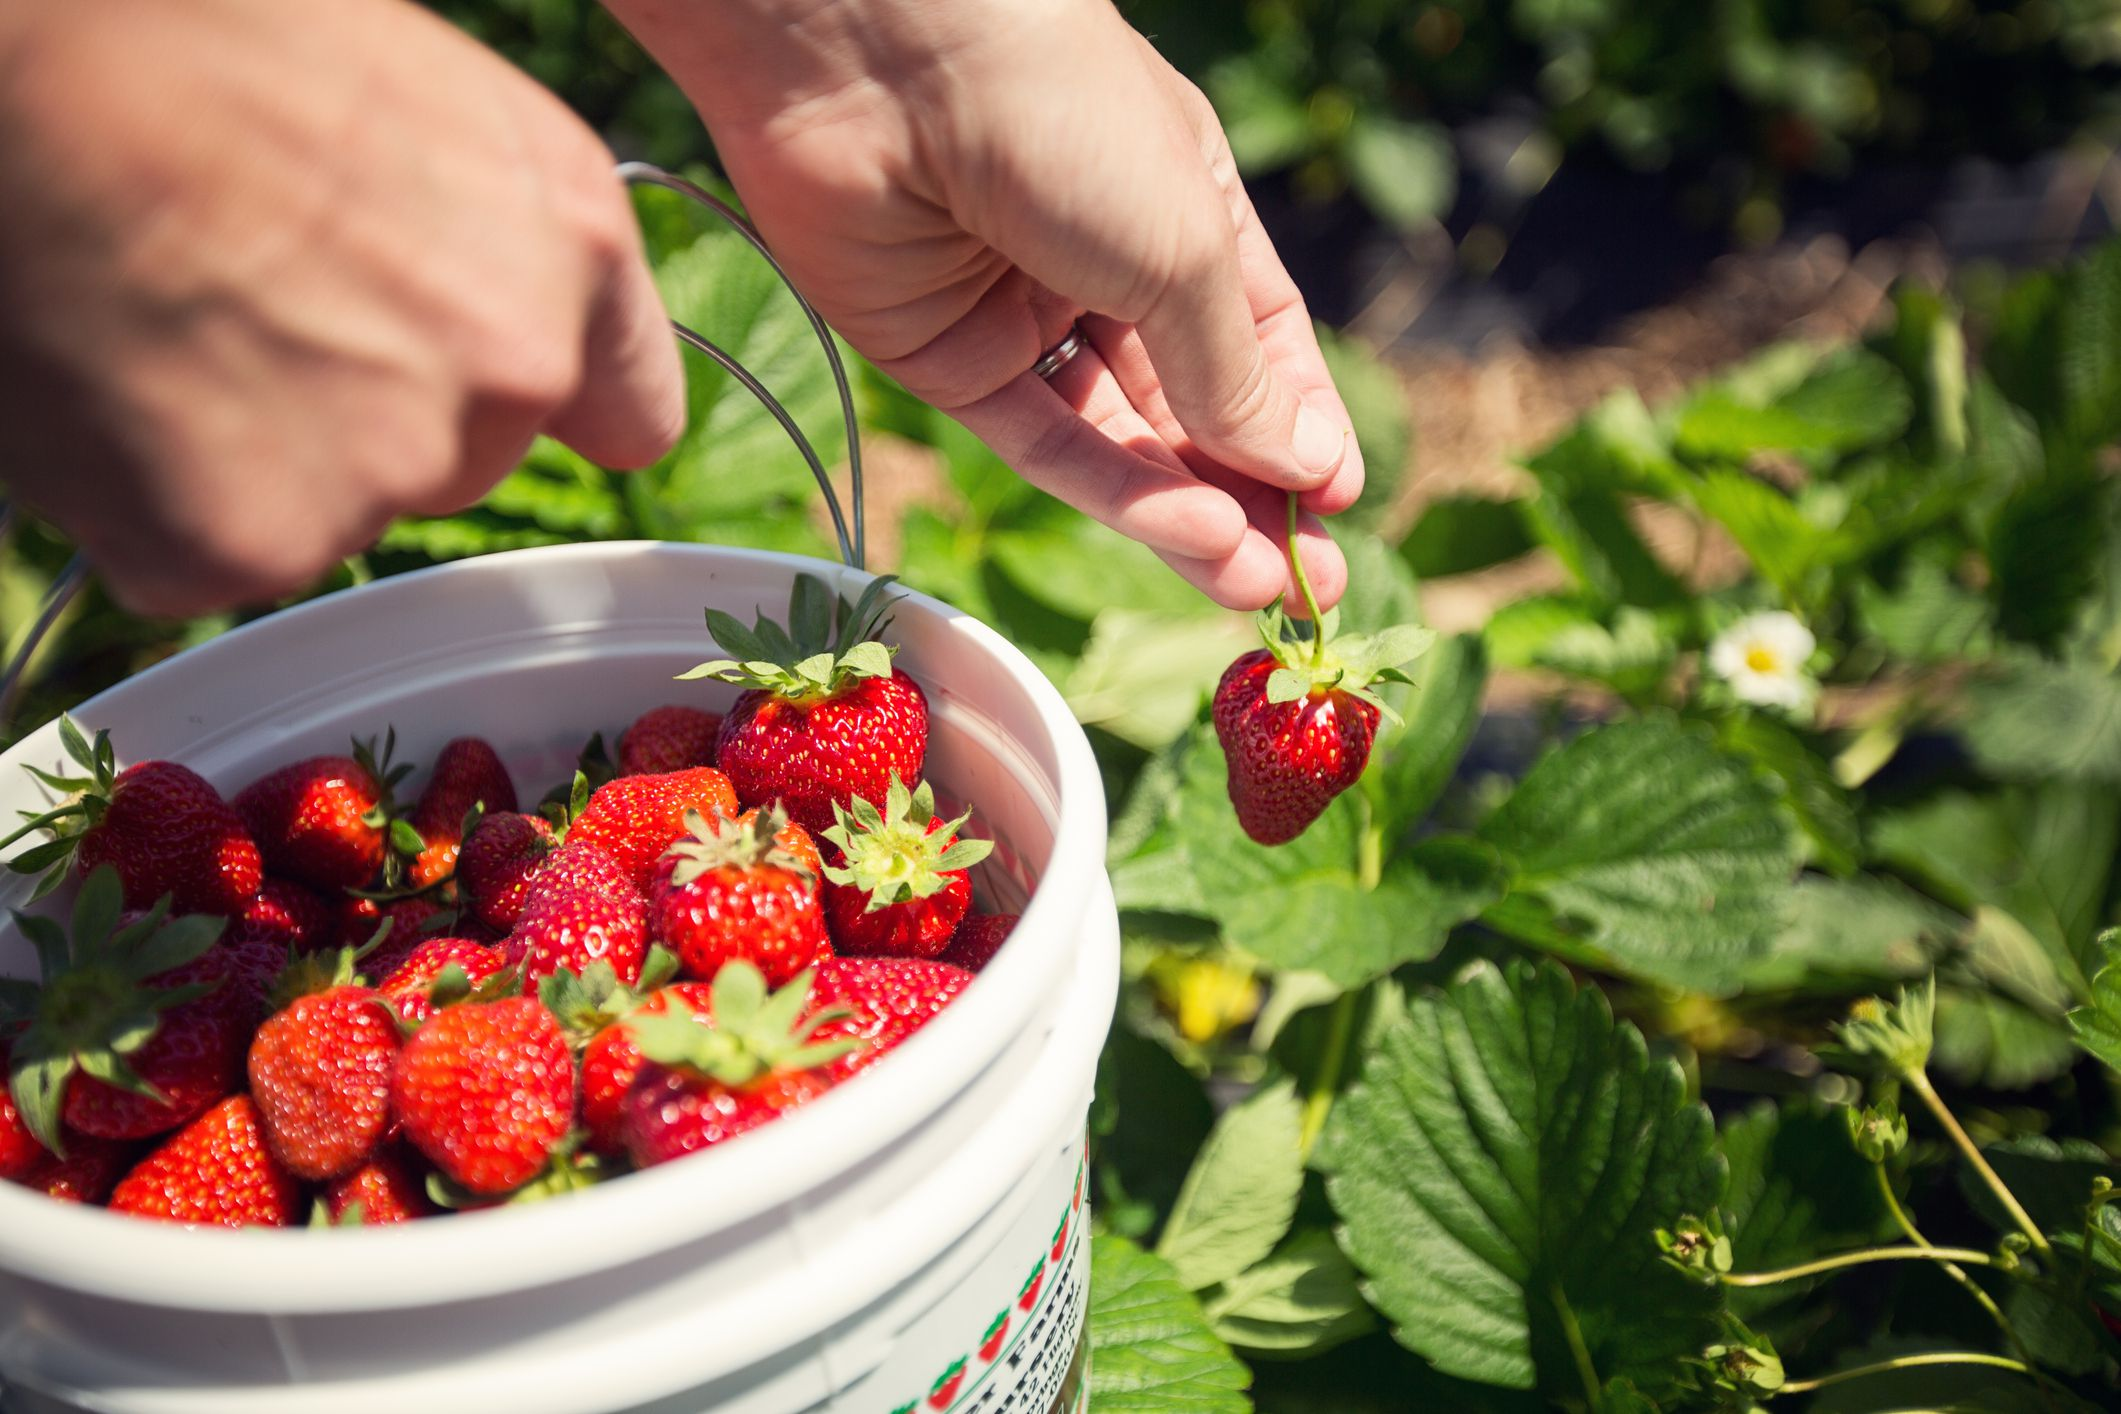 Pick Your Own Strawberries In The Pittsburgh Area